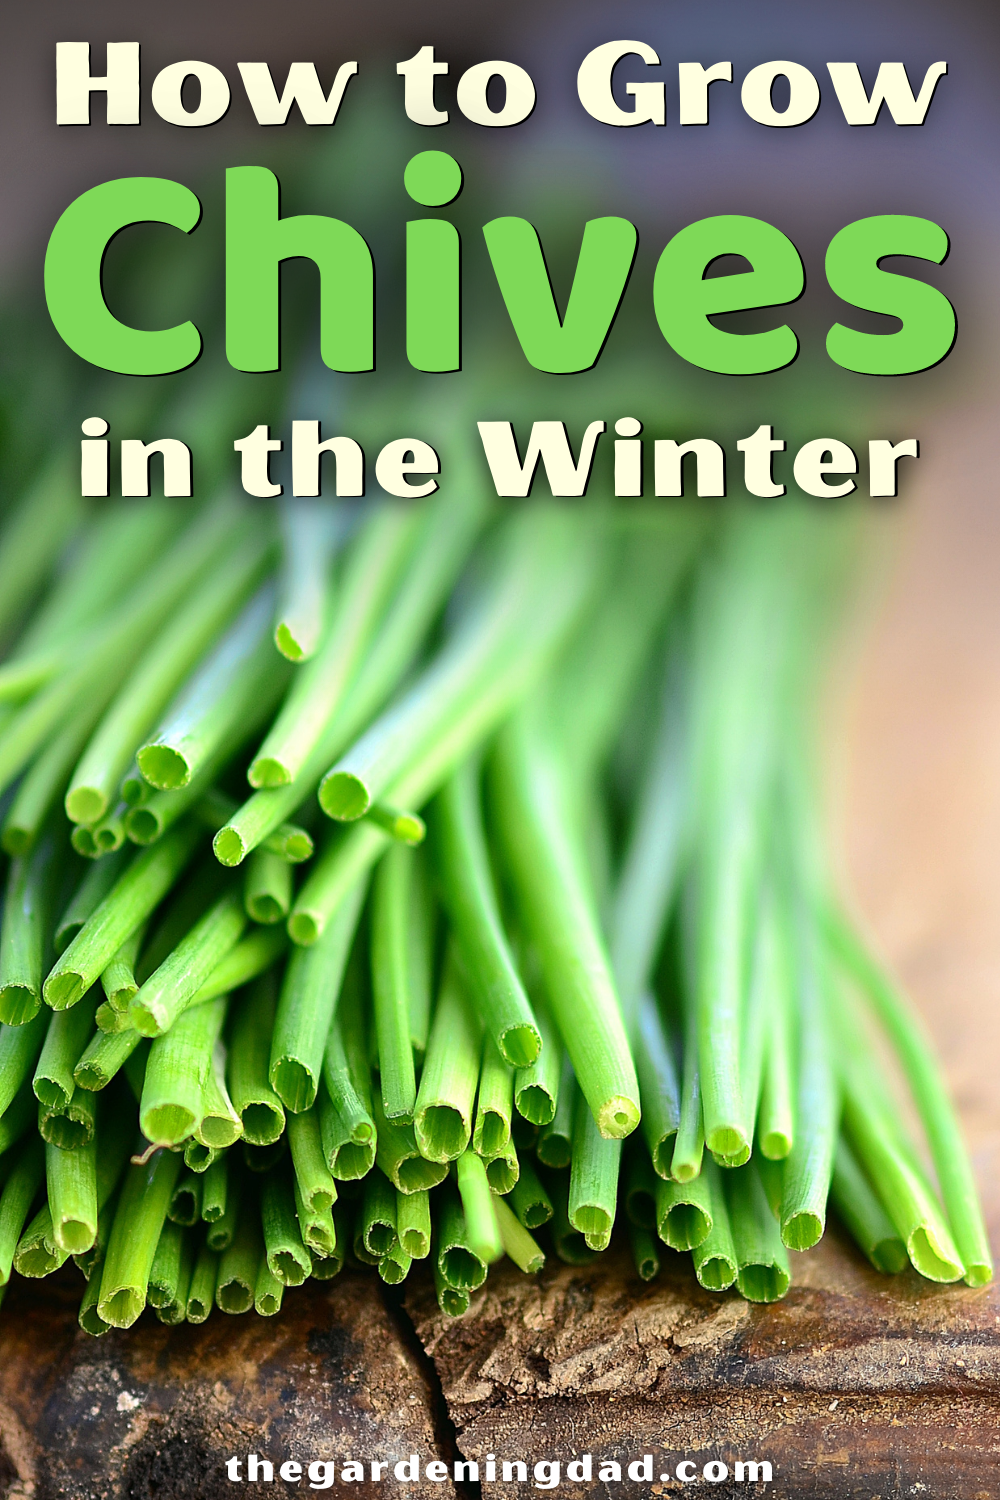 10 Proven Tips How To Grow Chives The Gardening Dad Growing Chives Growing Organic Vegetables Organic Gardening Tips